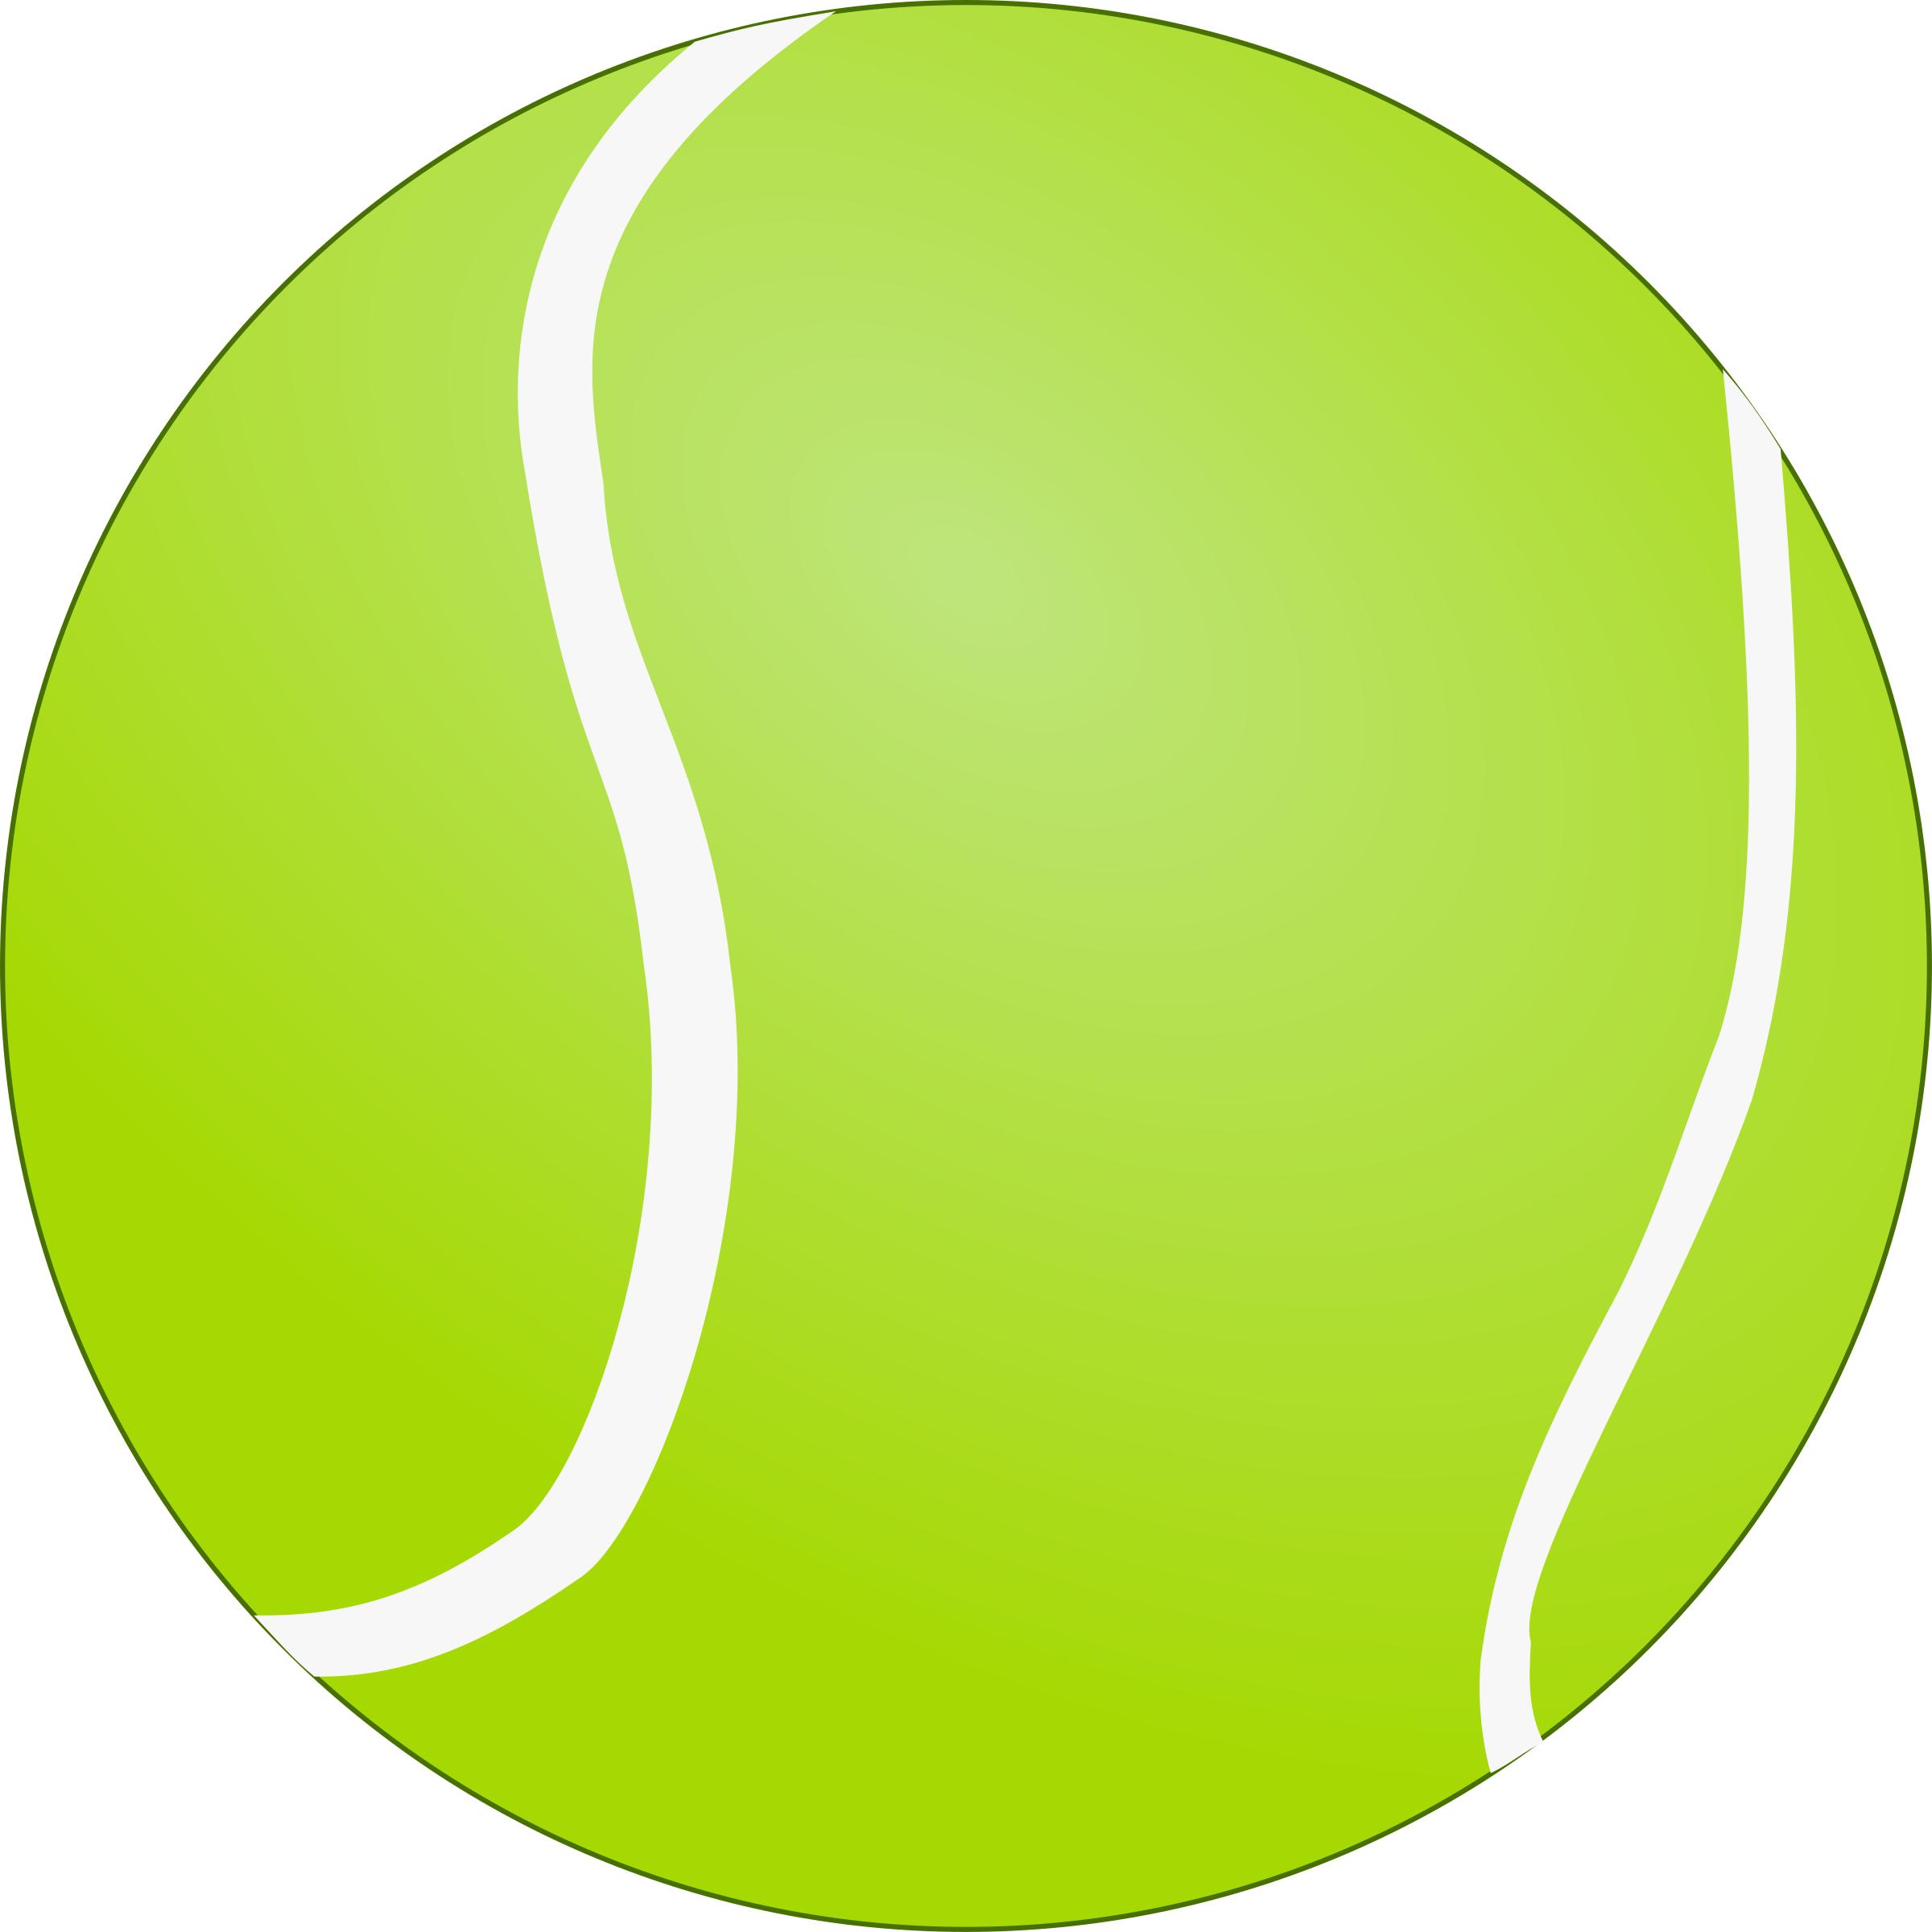 2400x2400 Free Ball Icons Png, Ball Images